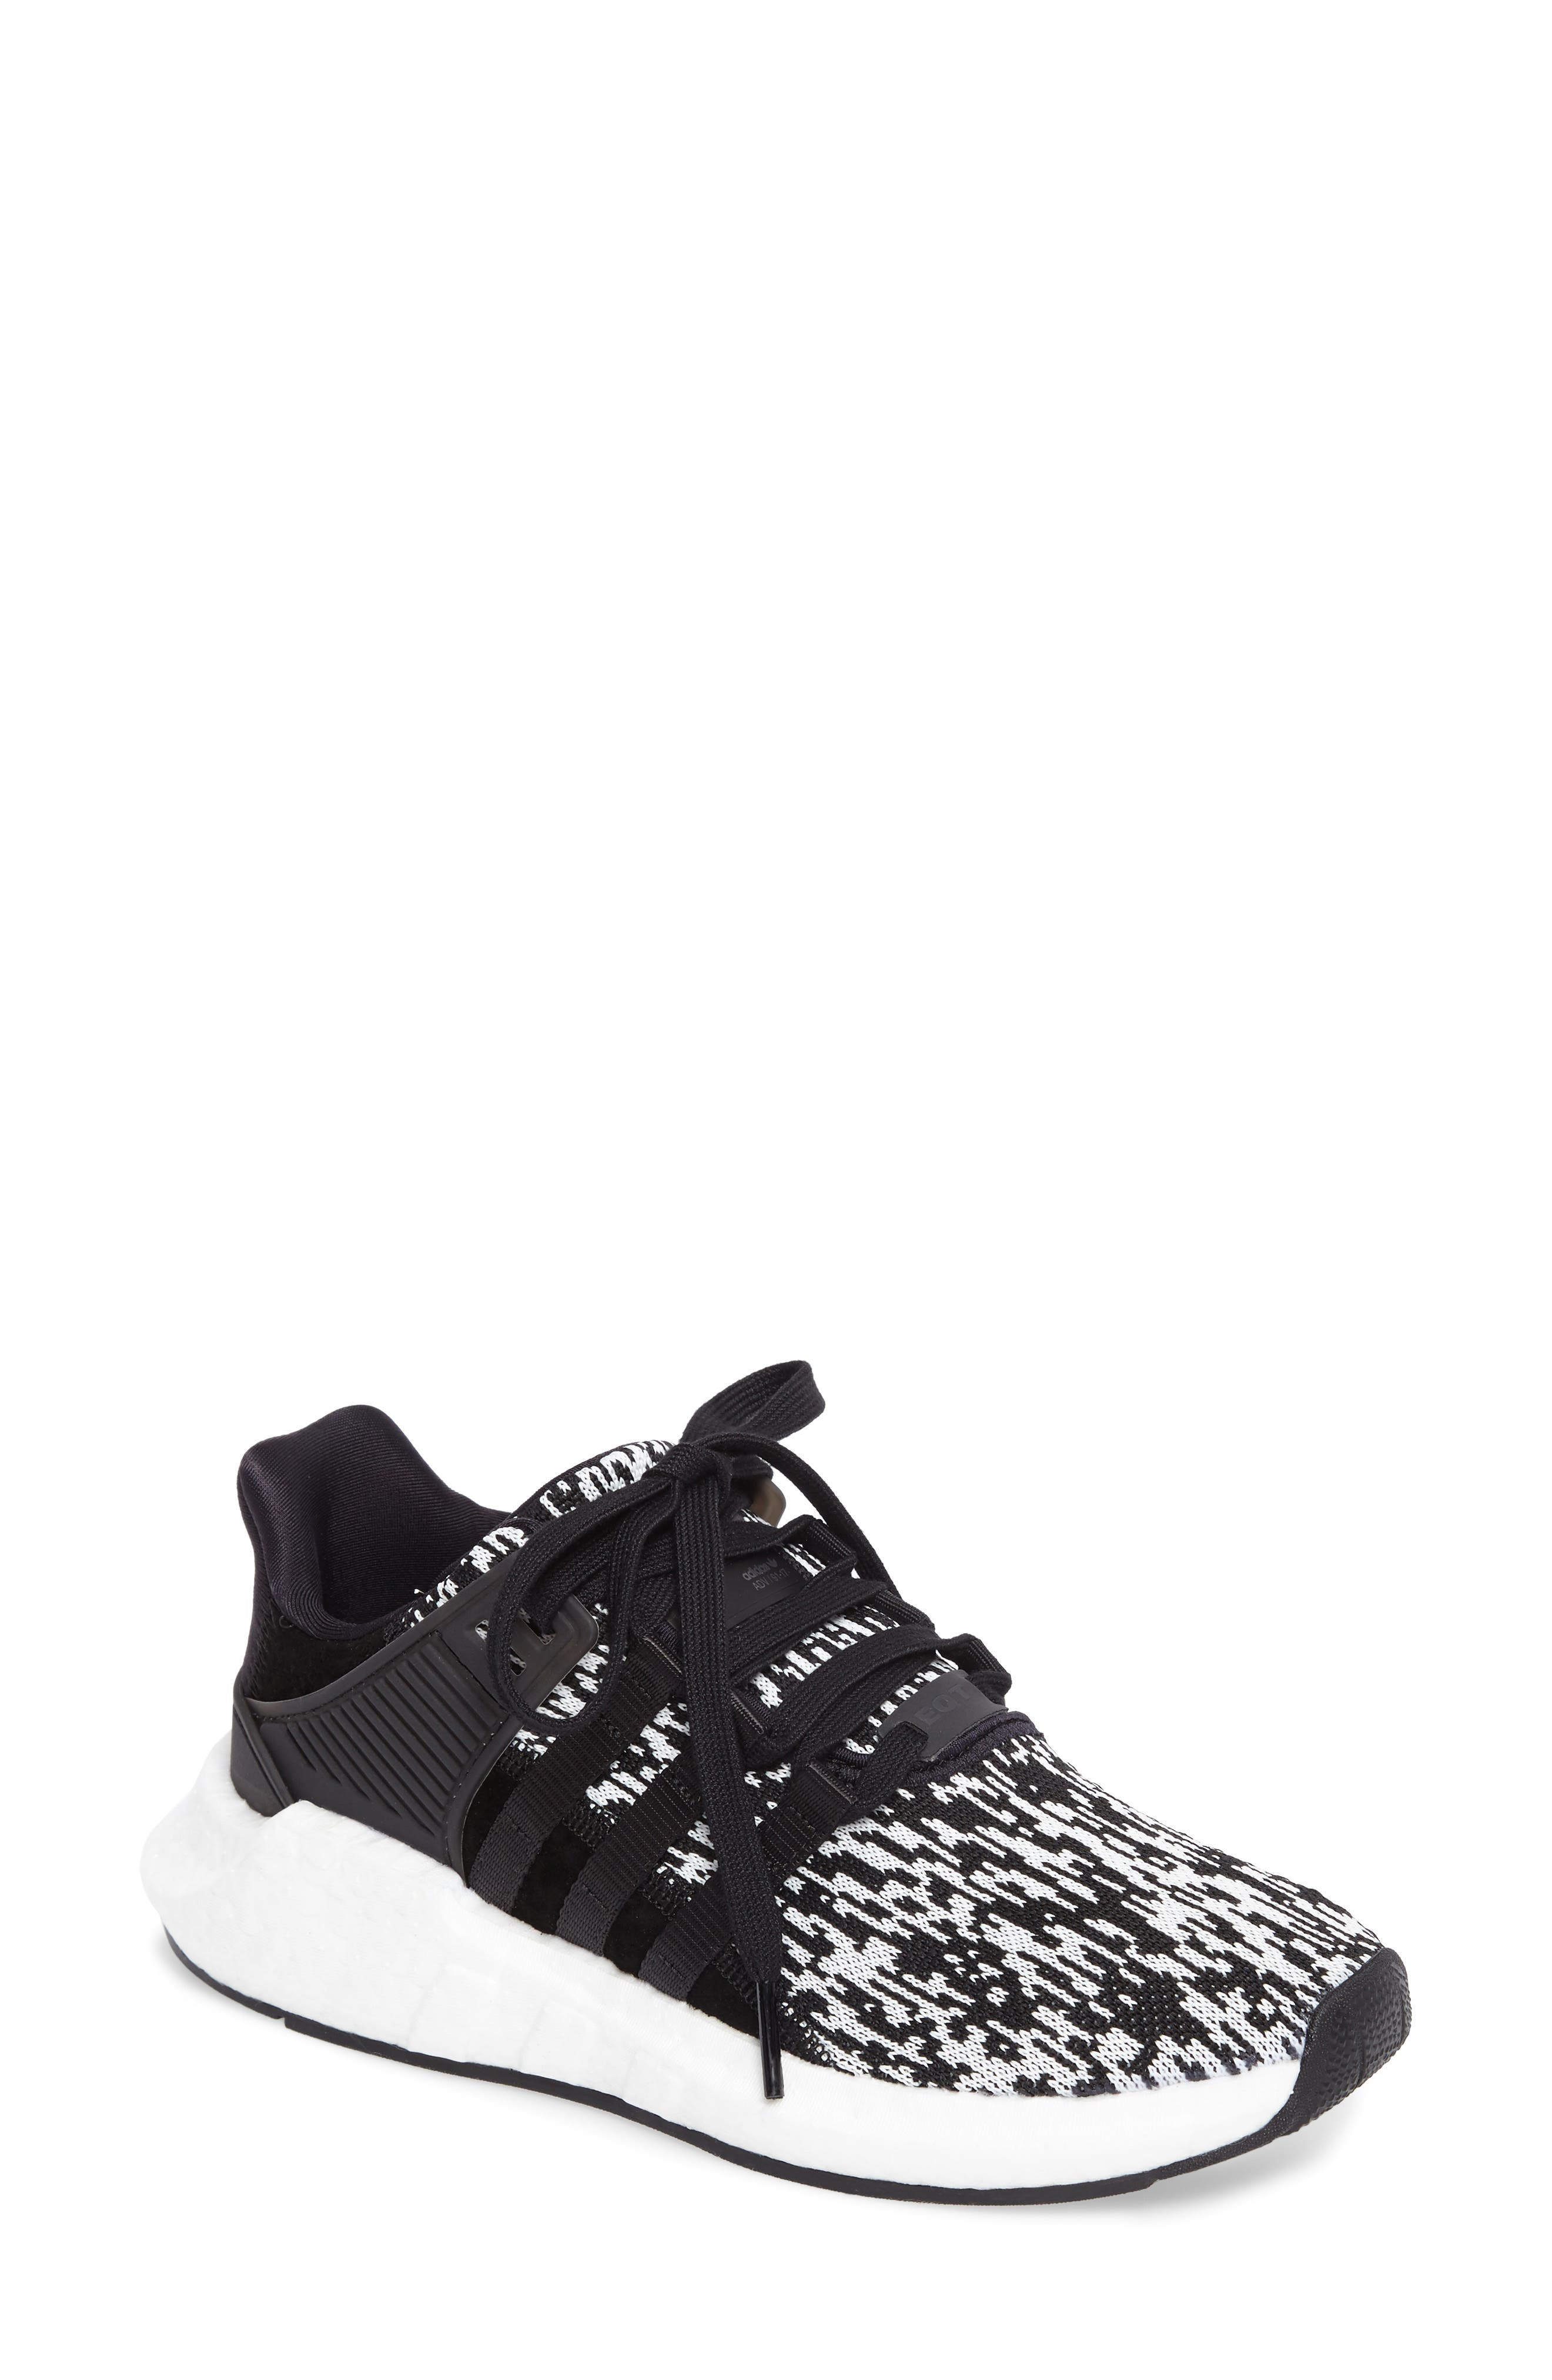 adidas EQT Support 93/17 Sneaker (Women)